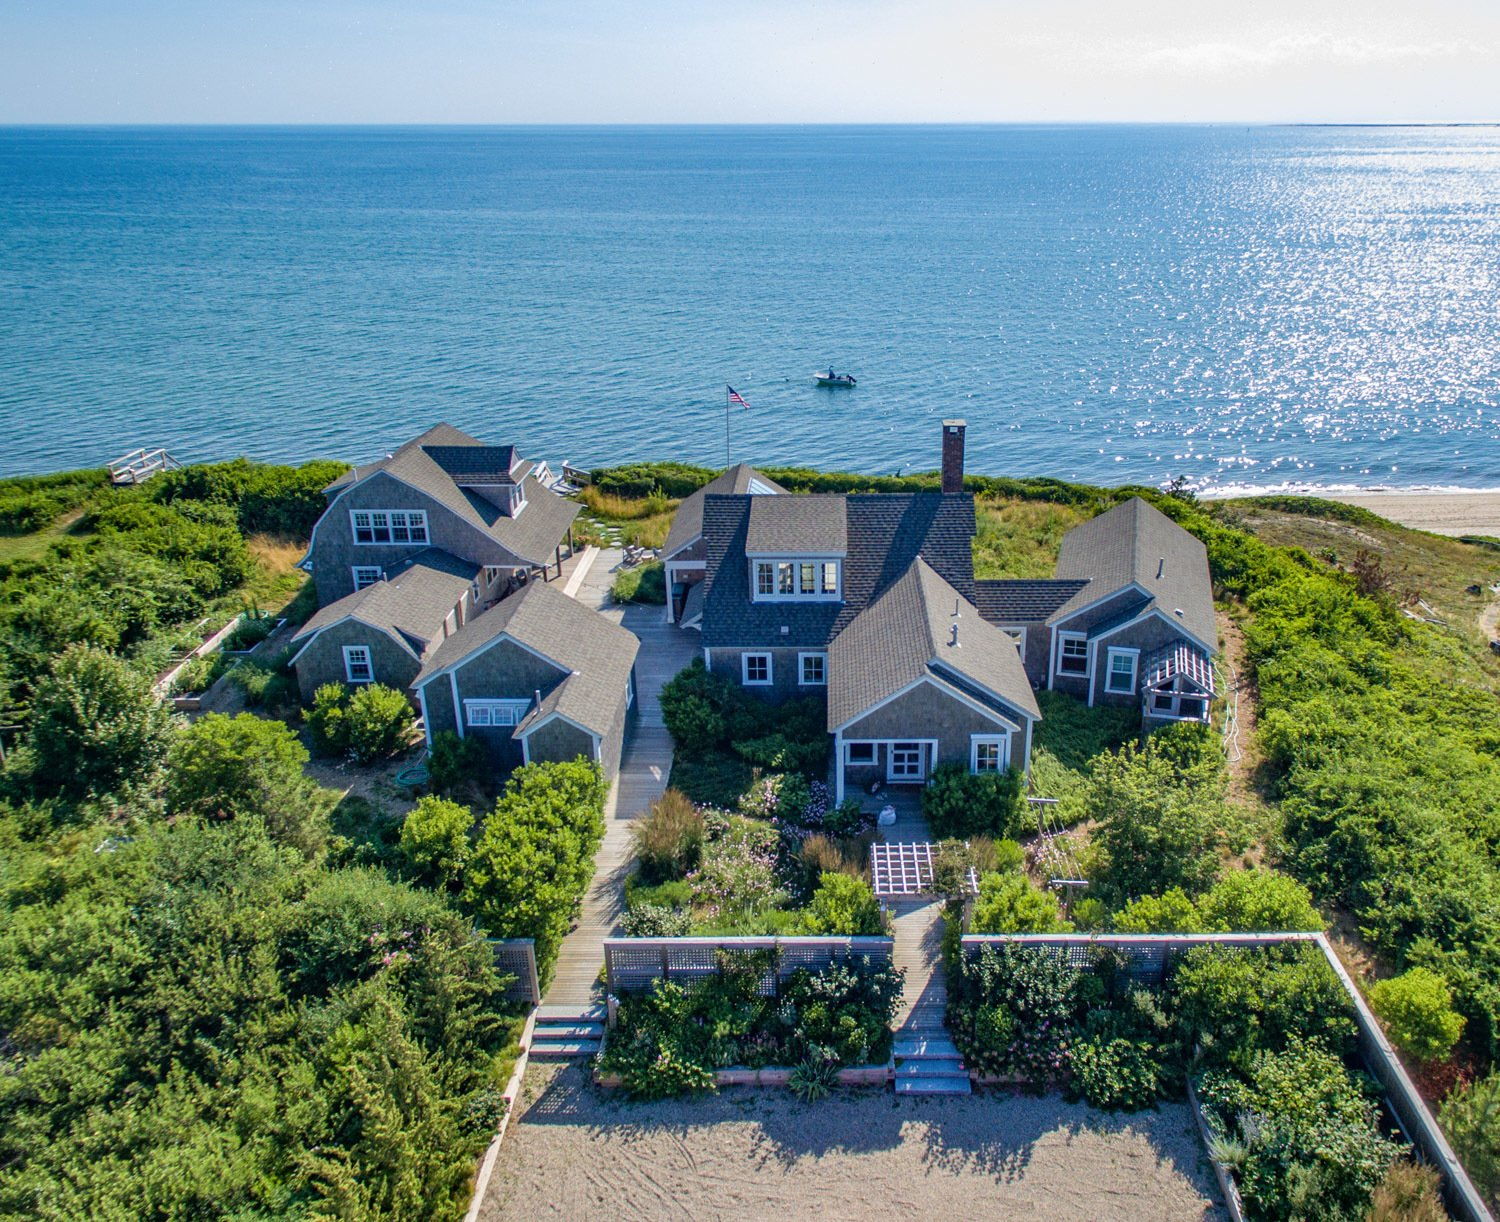 Aerial view of the compound overlooking Cape Cod Bay.